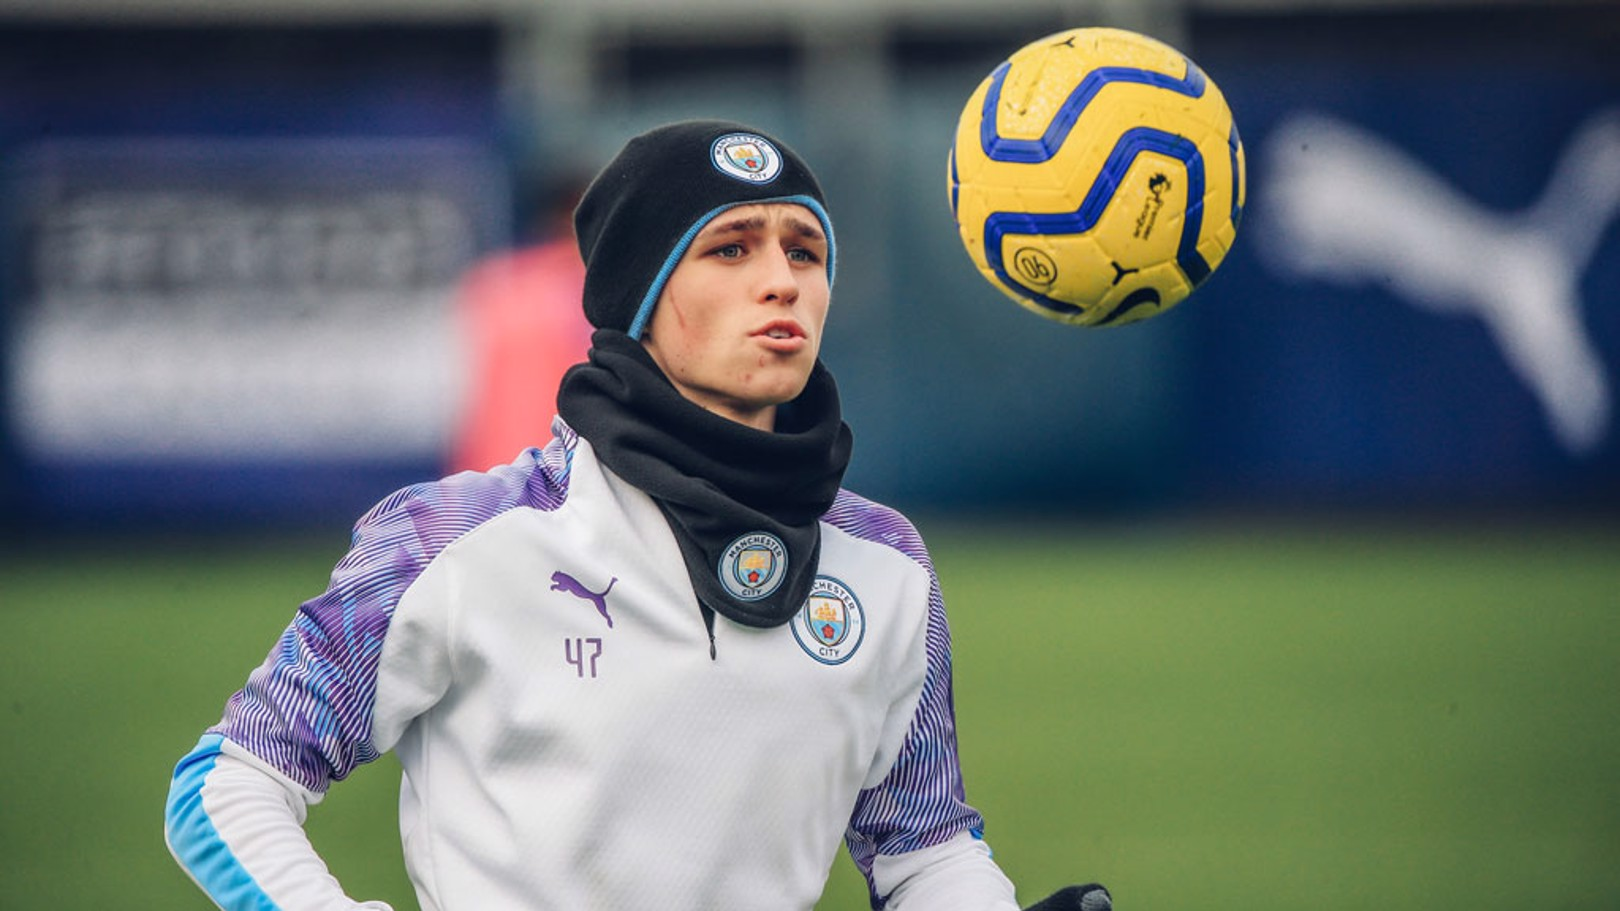 FANTASTIC MR FODEN: Eyes on the ball, Phil!